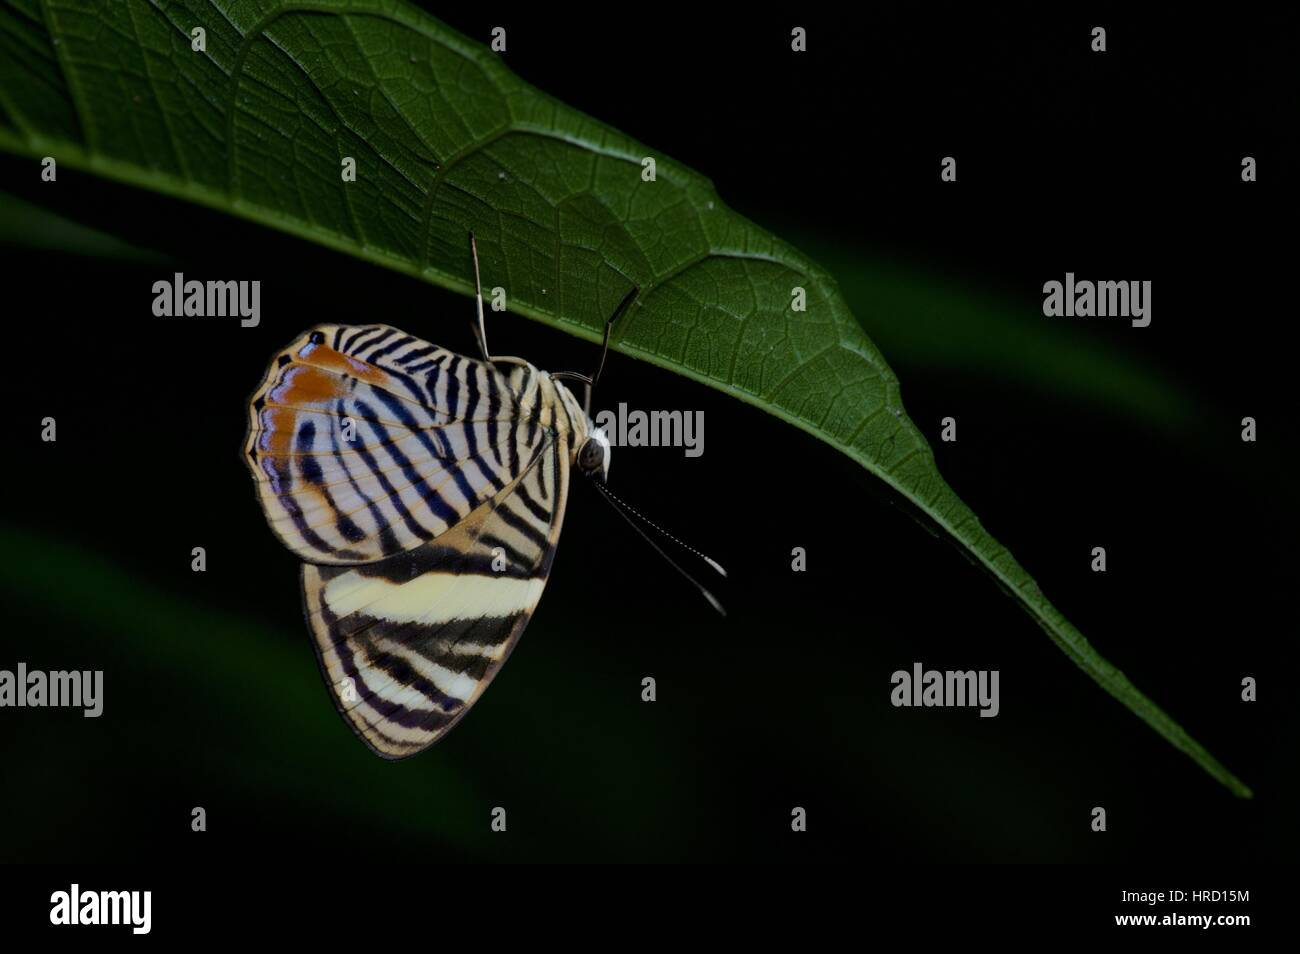 A Tiger Beauty (Tigridia acesta) hanging upside-down in the rainforest at night on Pipeline Road in Gamboa, Panama - Stock Image